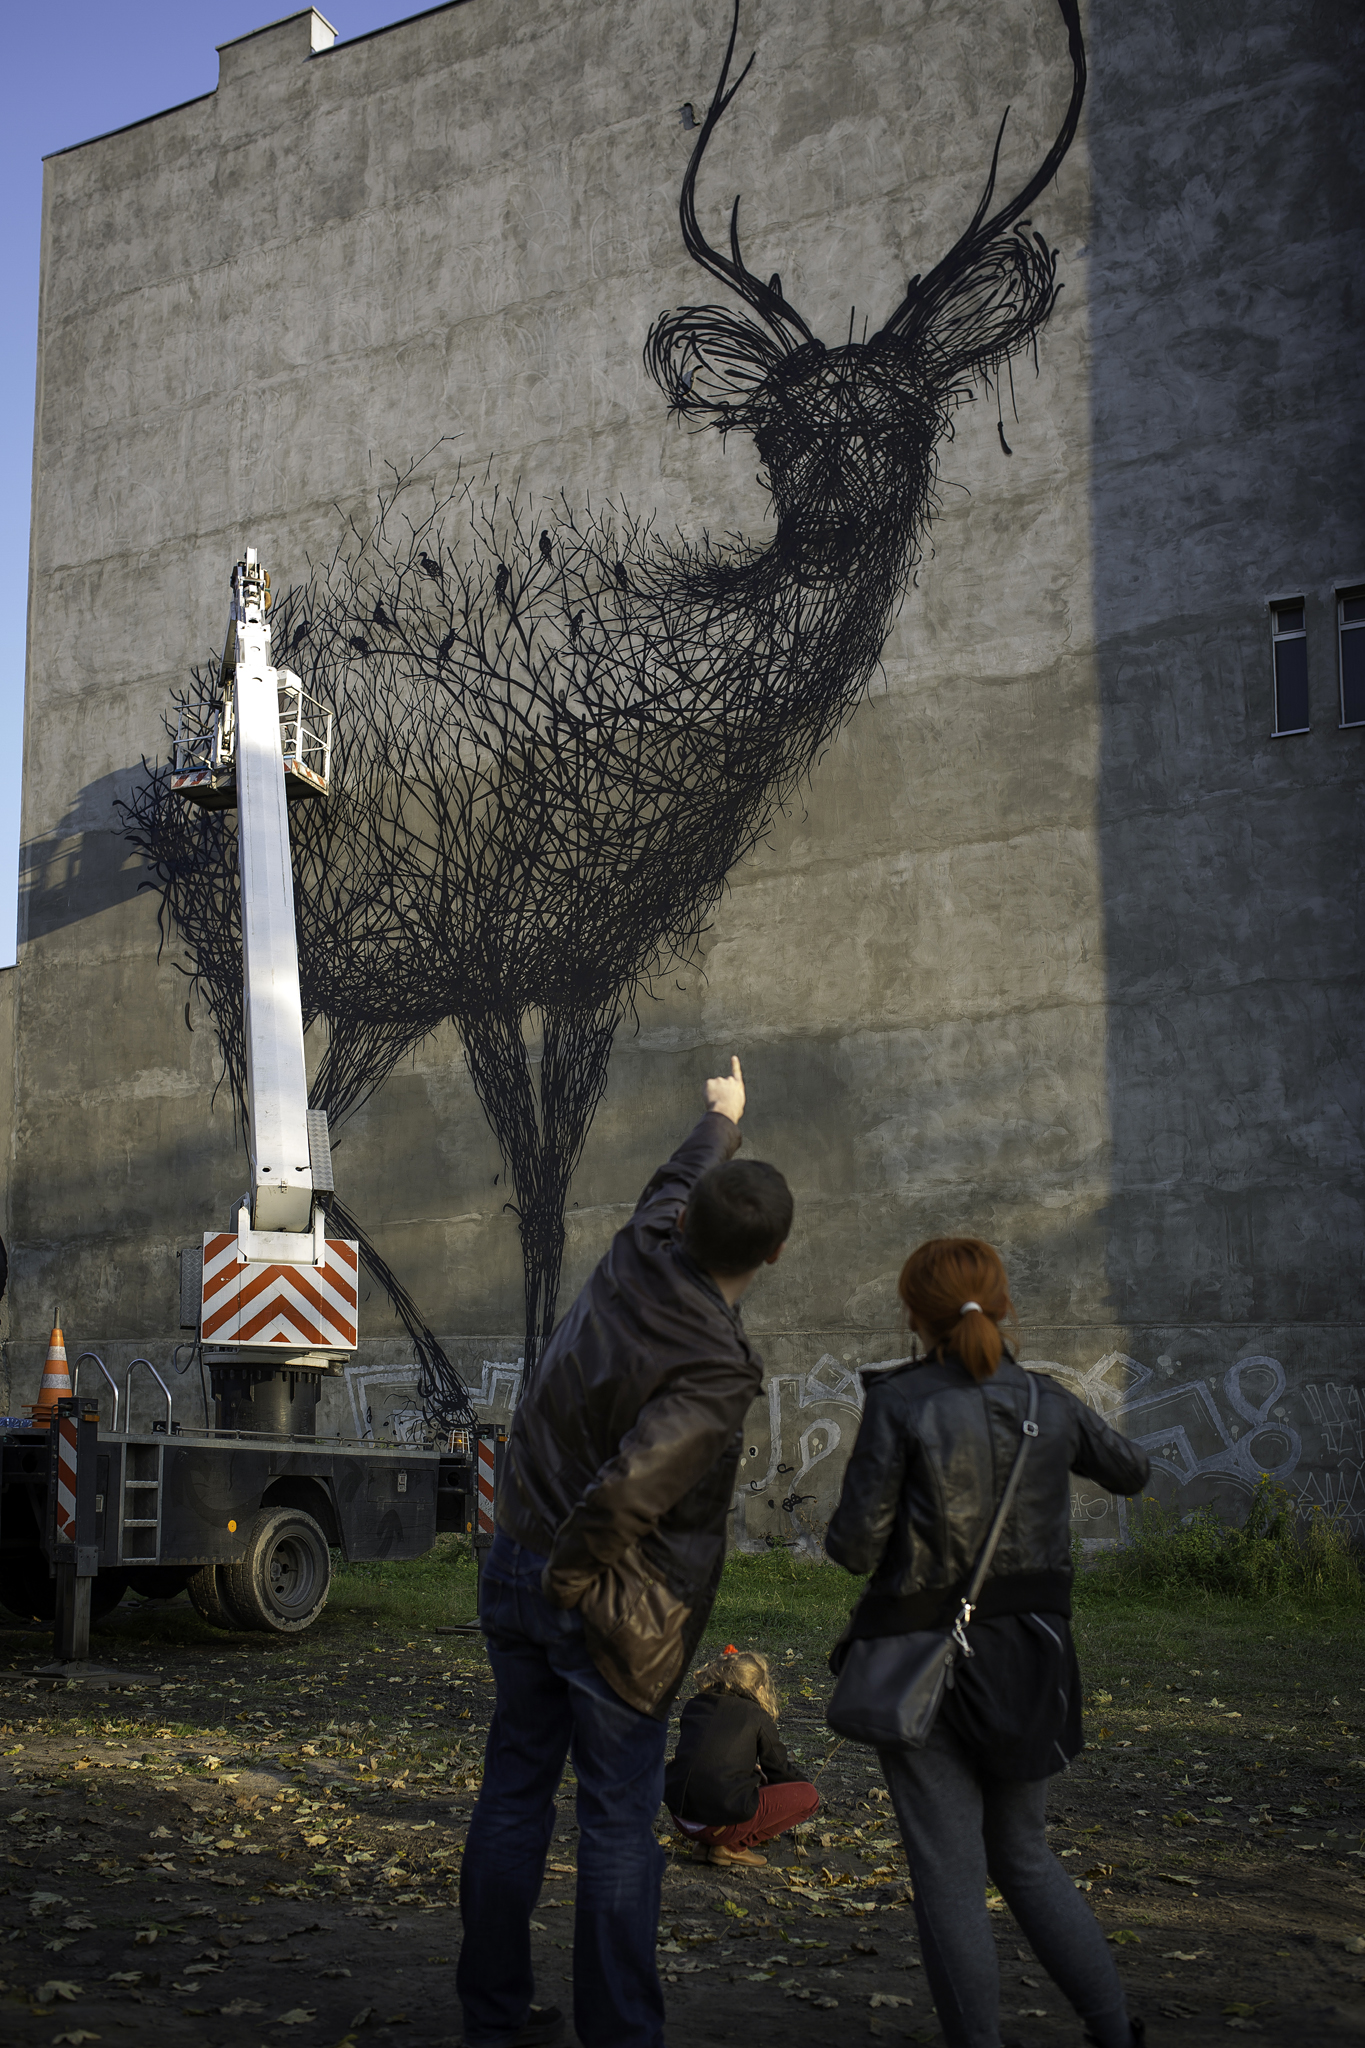 Street Art by DALEAST in Lodz, Poland in for Galeria Urban Forms project 5